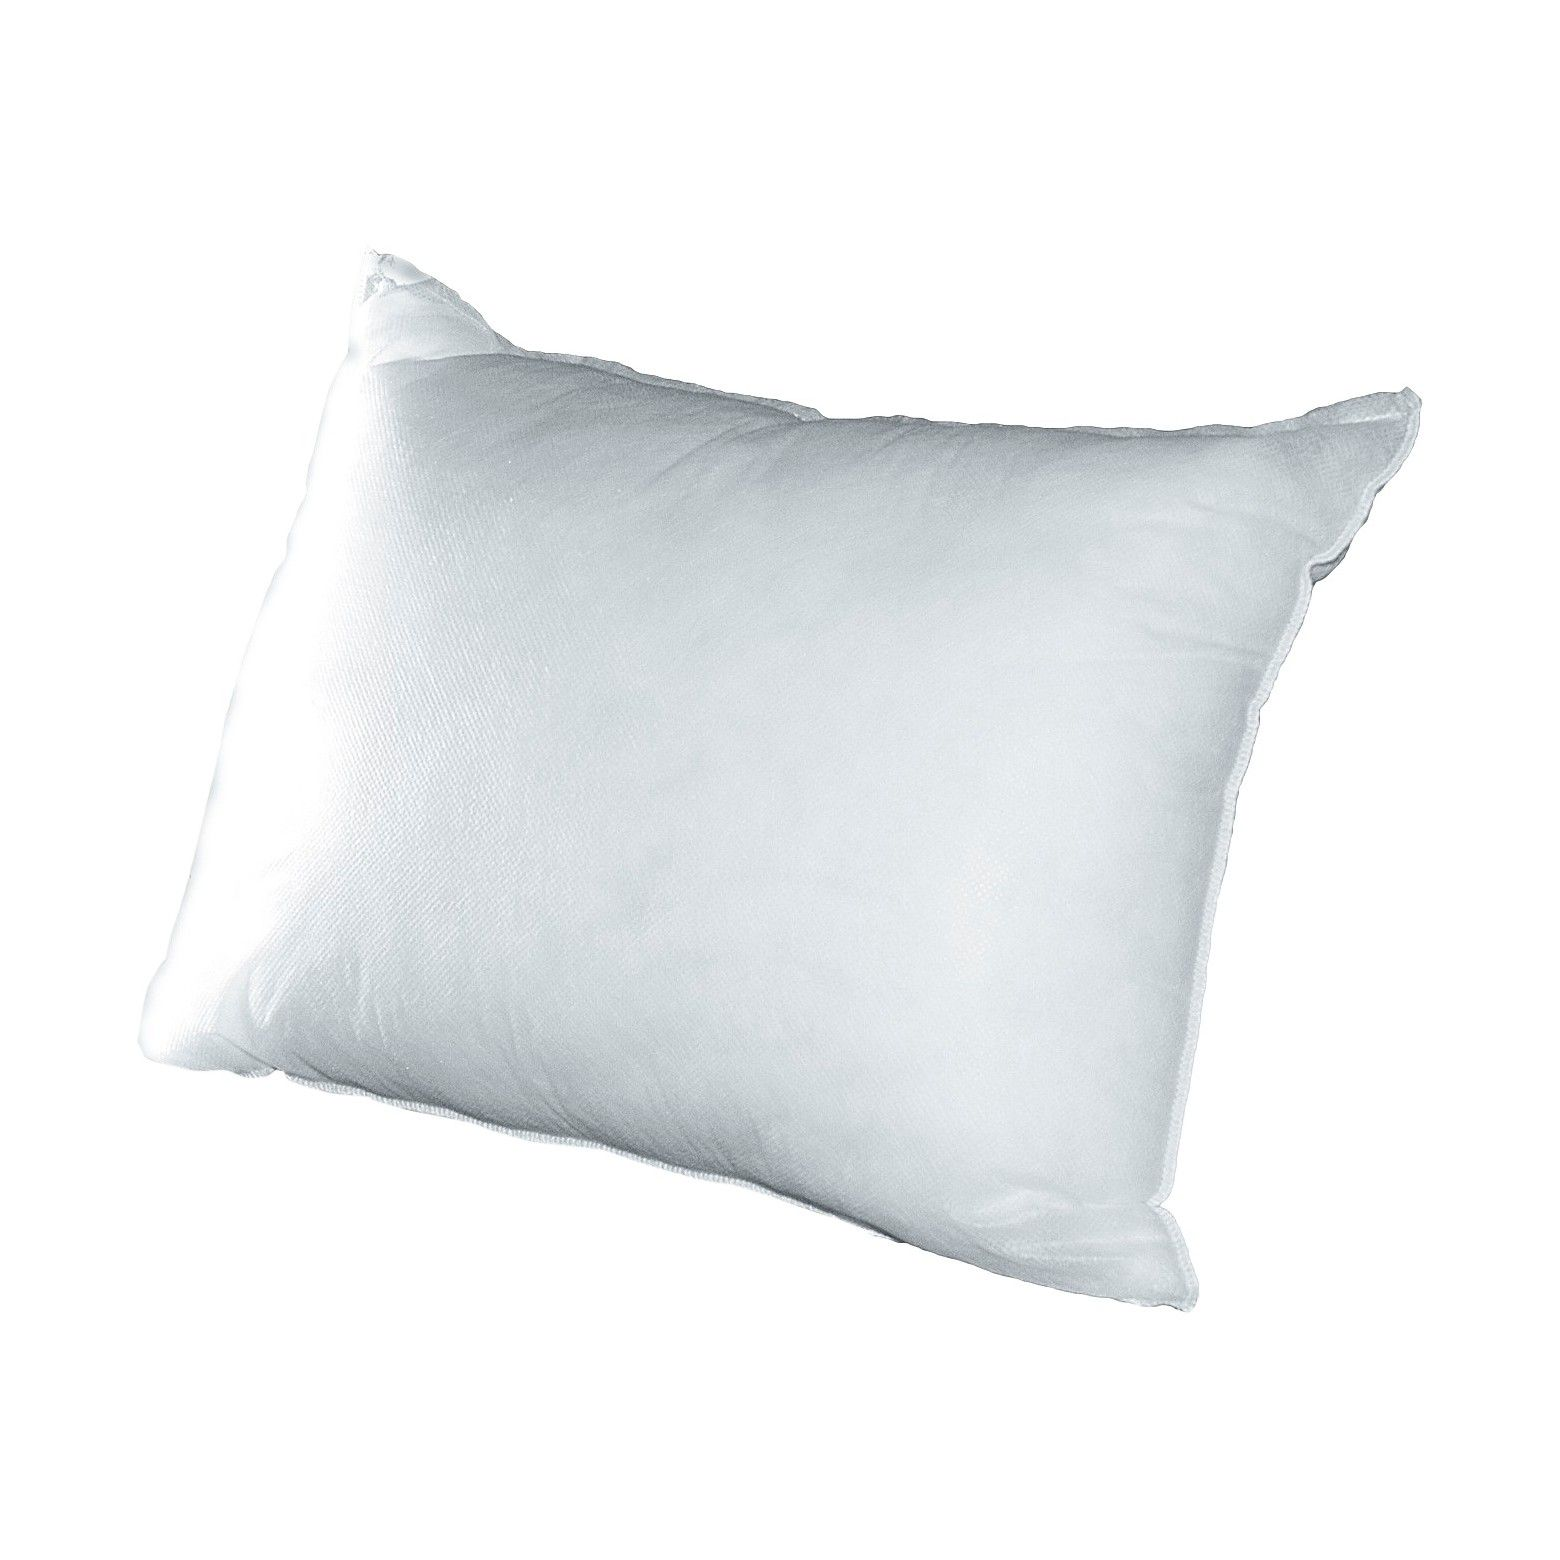 The Toss Pillow Insert 20x20 Square Is The Perfect Filler For All Your Favorite Square Shams This Throw Throw Pillows Throw Pillow Inserts White Throw Pillows Pillow inserts 20 x 20